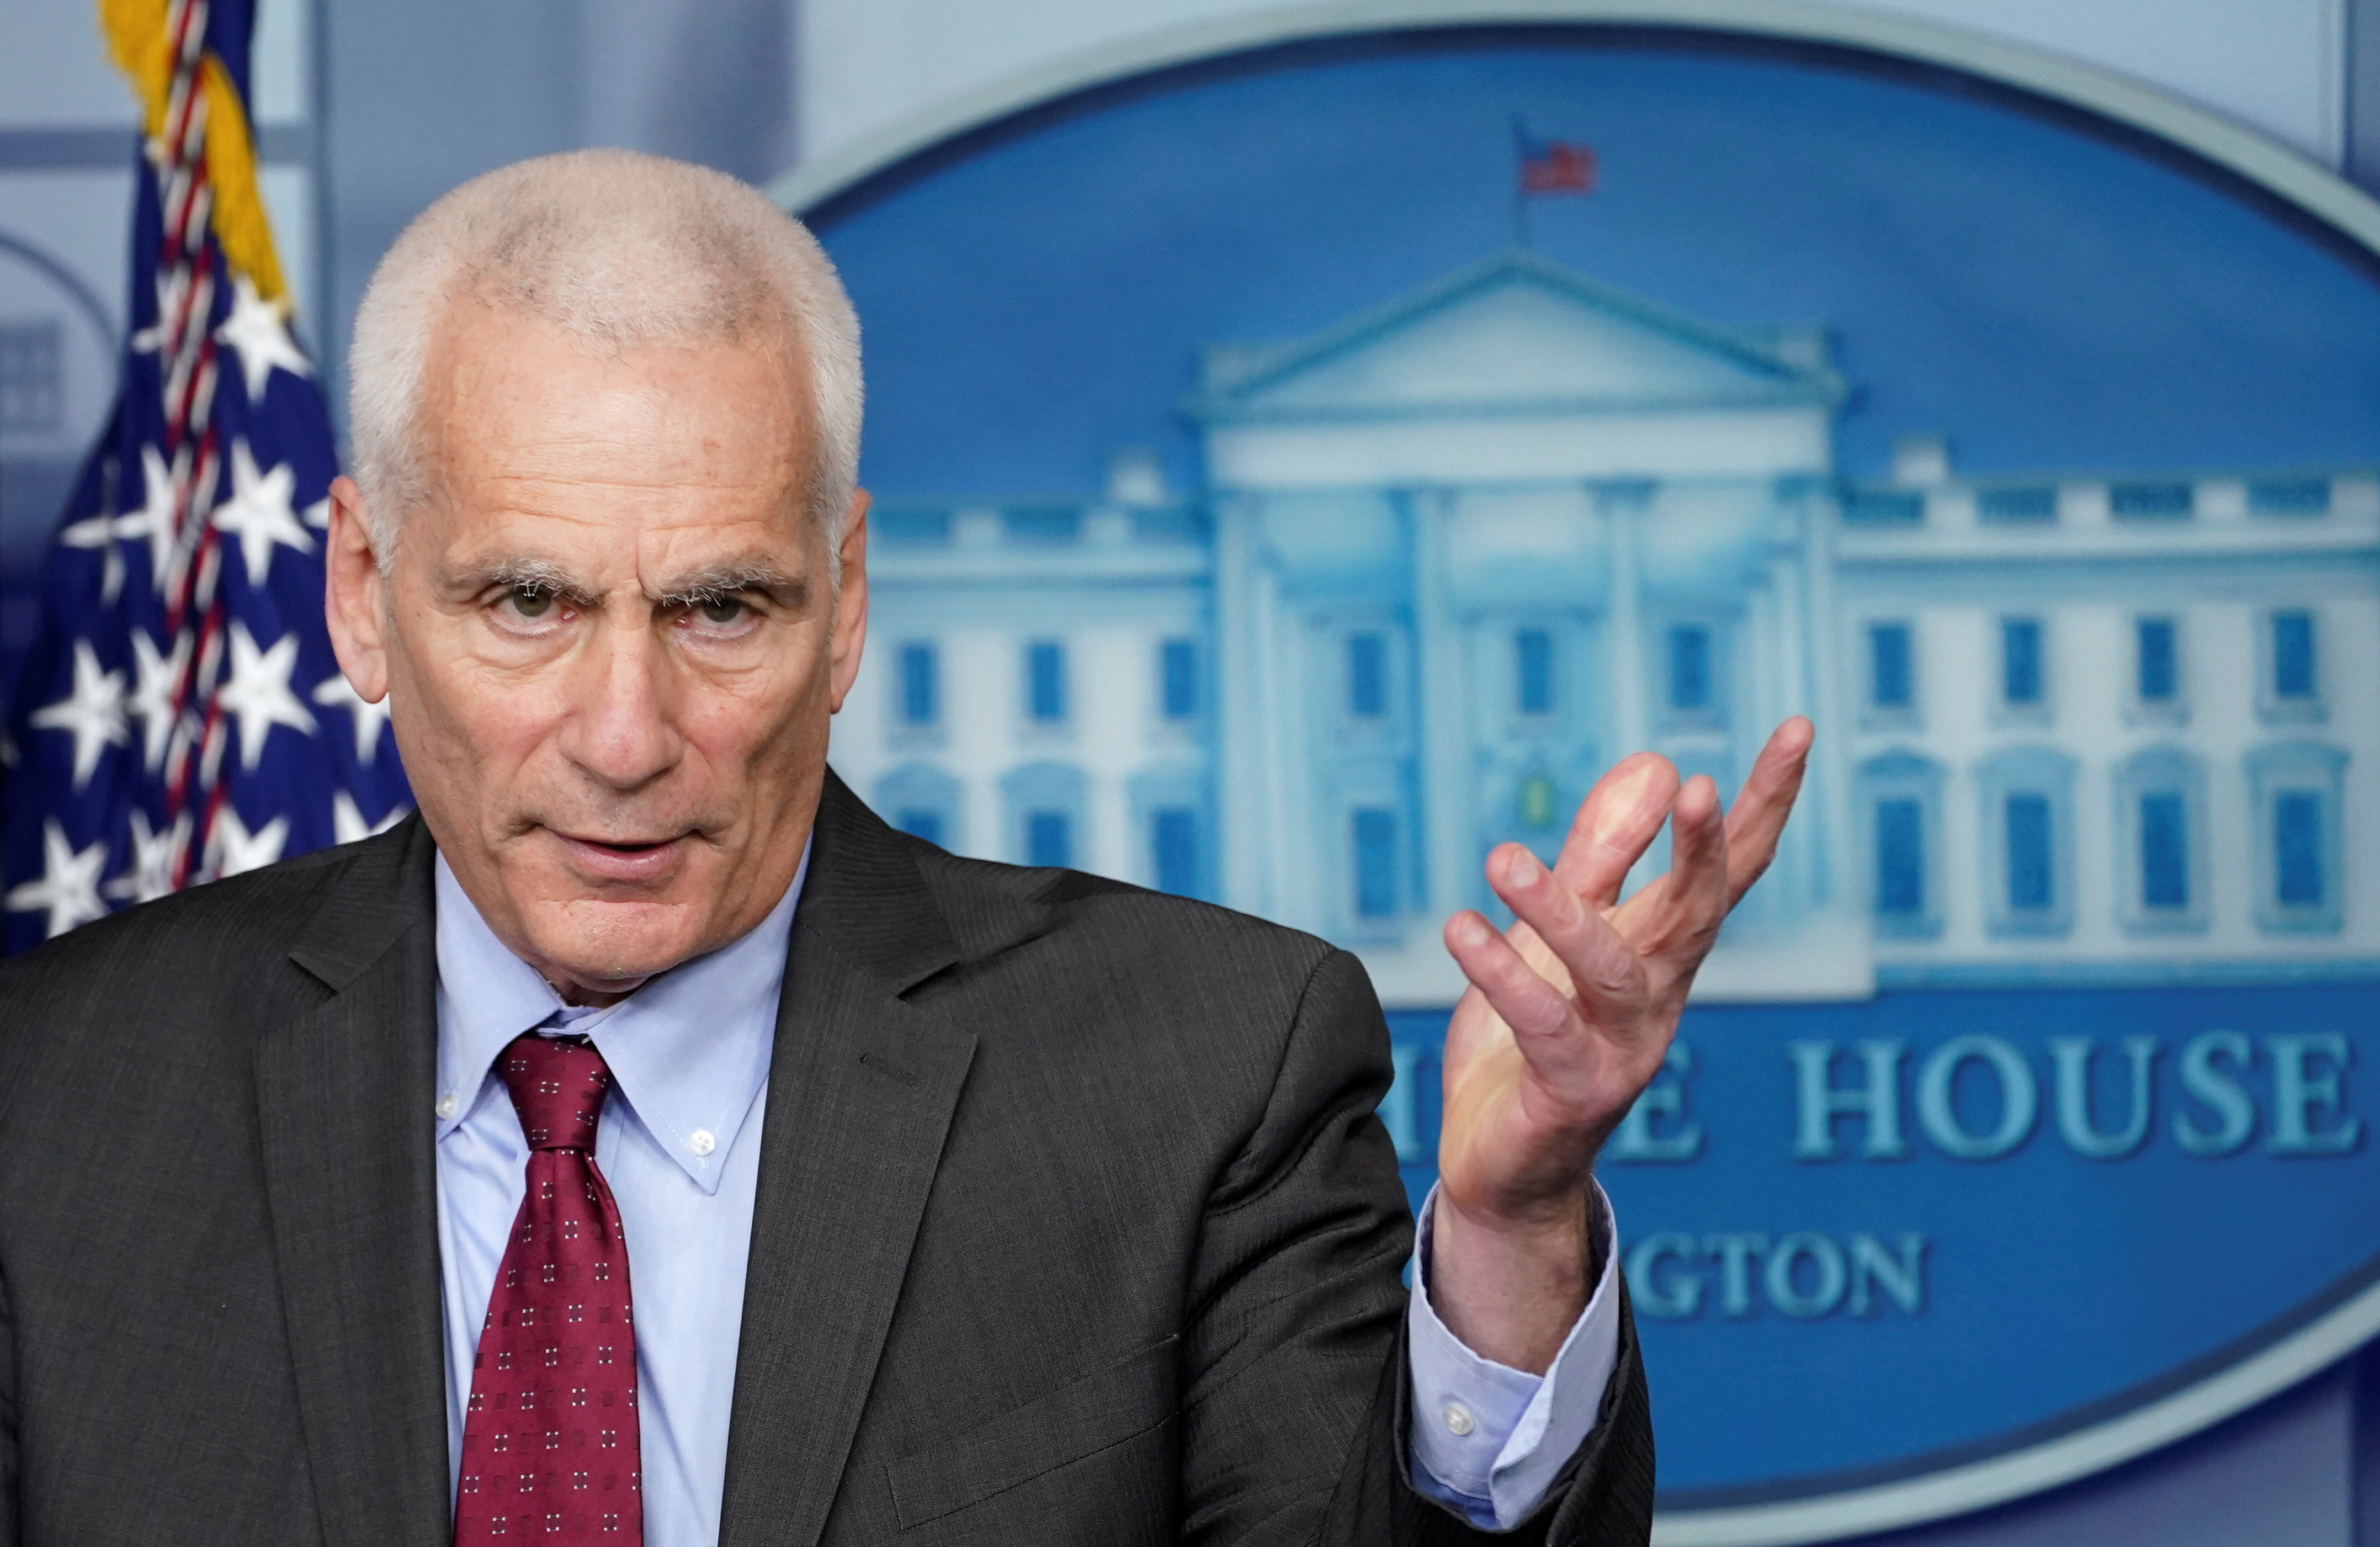 Council of Economic Advisers member Jared Bernstein speaks during a press briefing at the White House in Washington, U.S., February 5, 2021. REUTERS/Kevin Lamarque